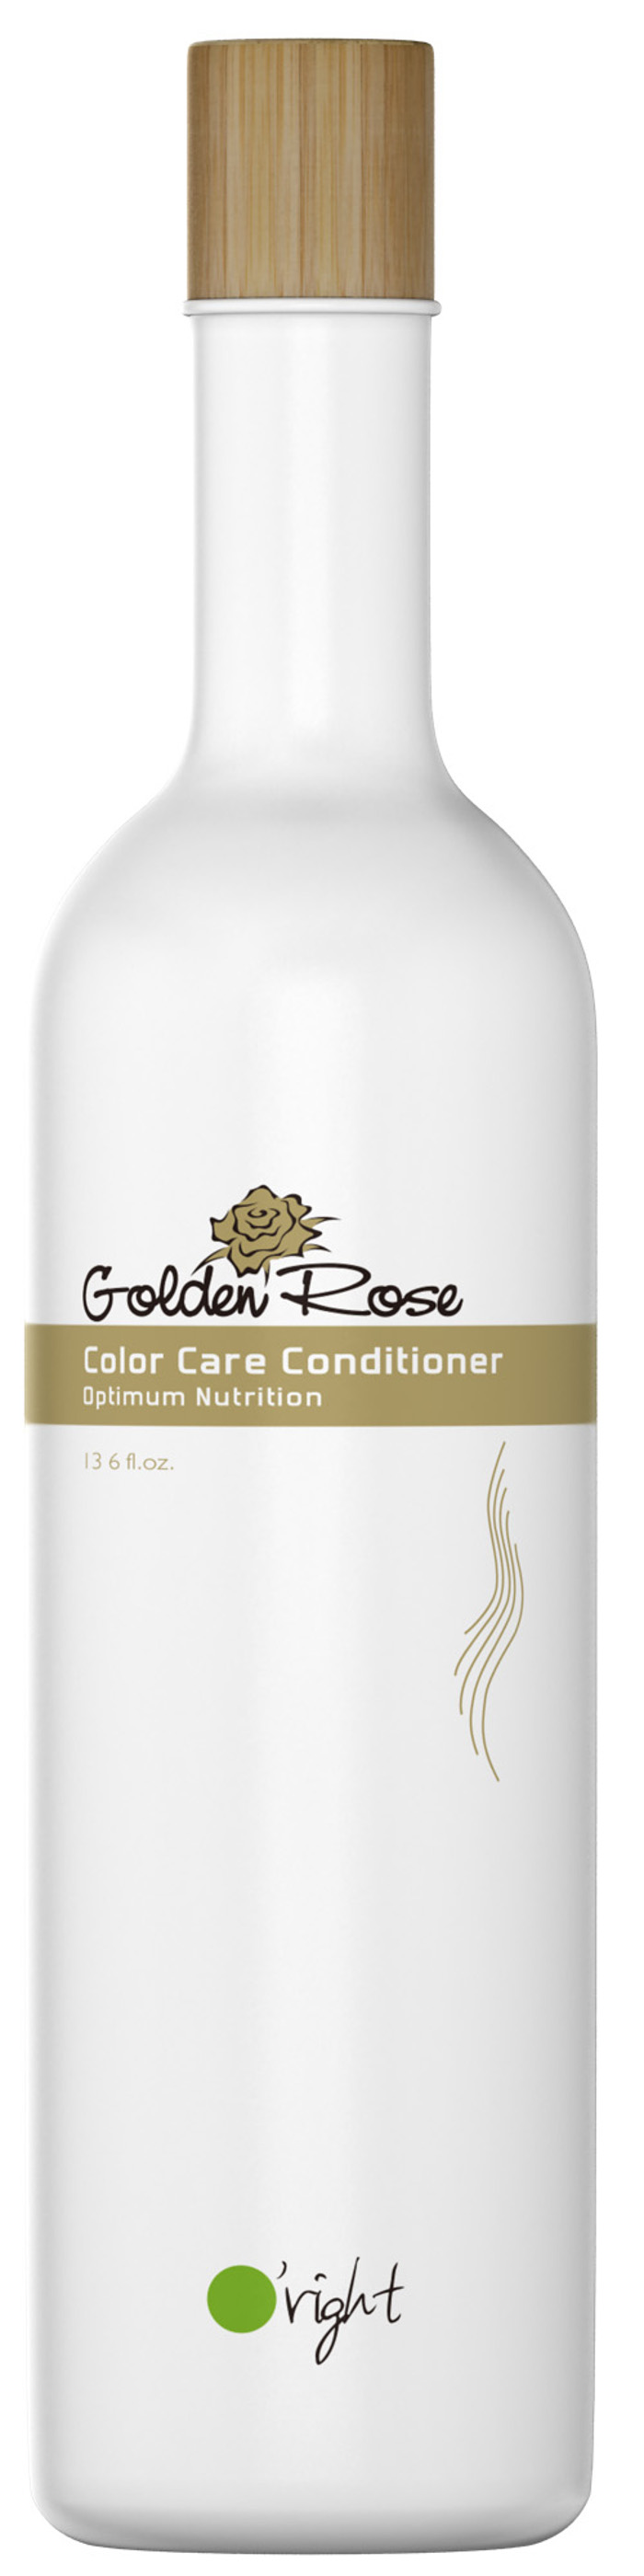 Golden Rose Color Care Conditioner 400ml